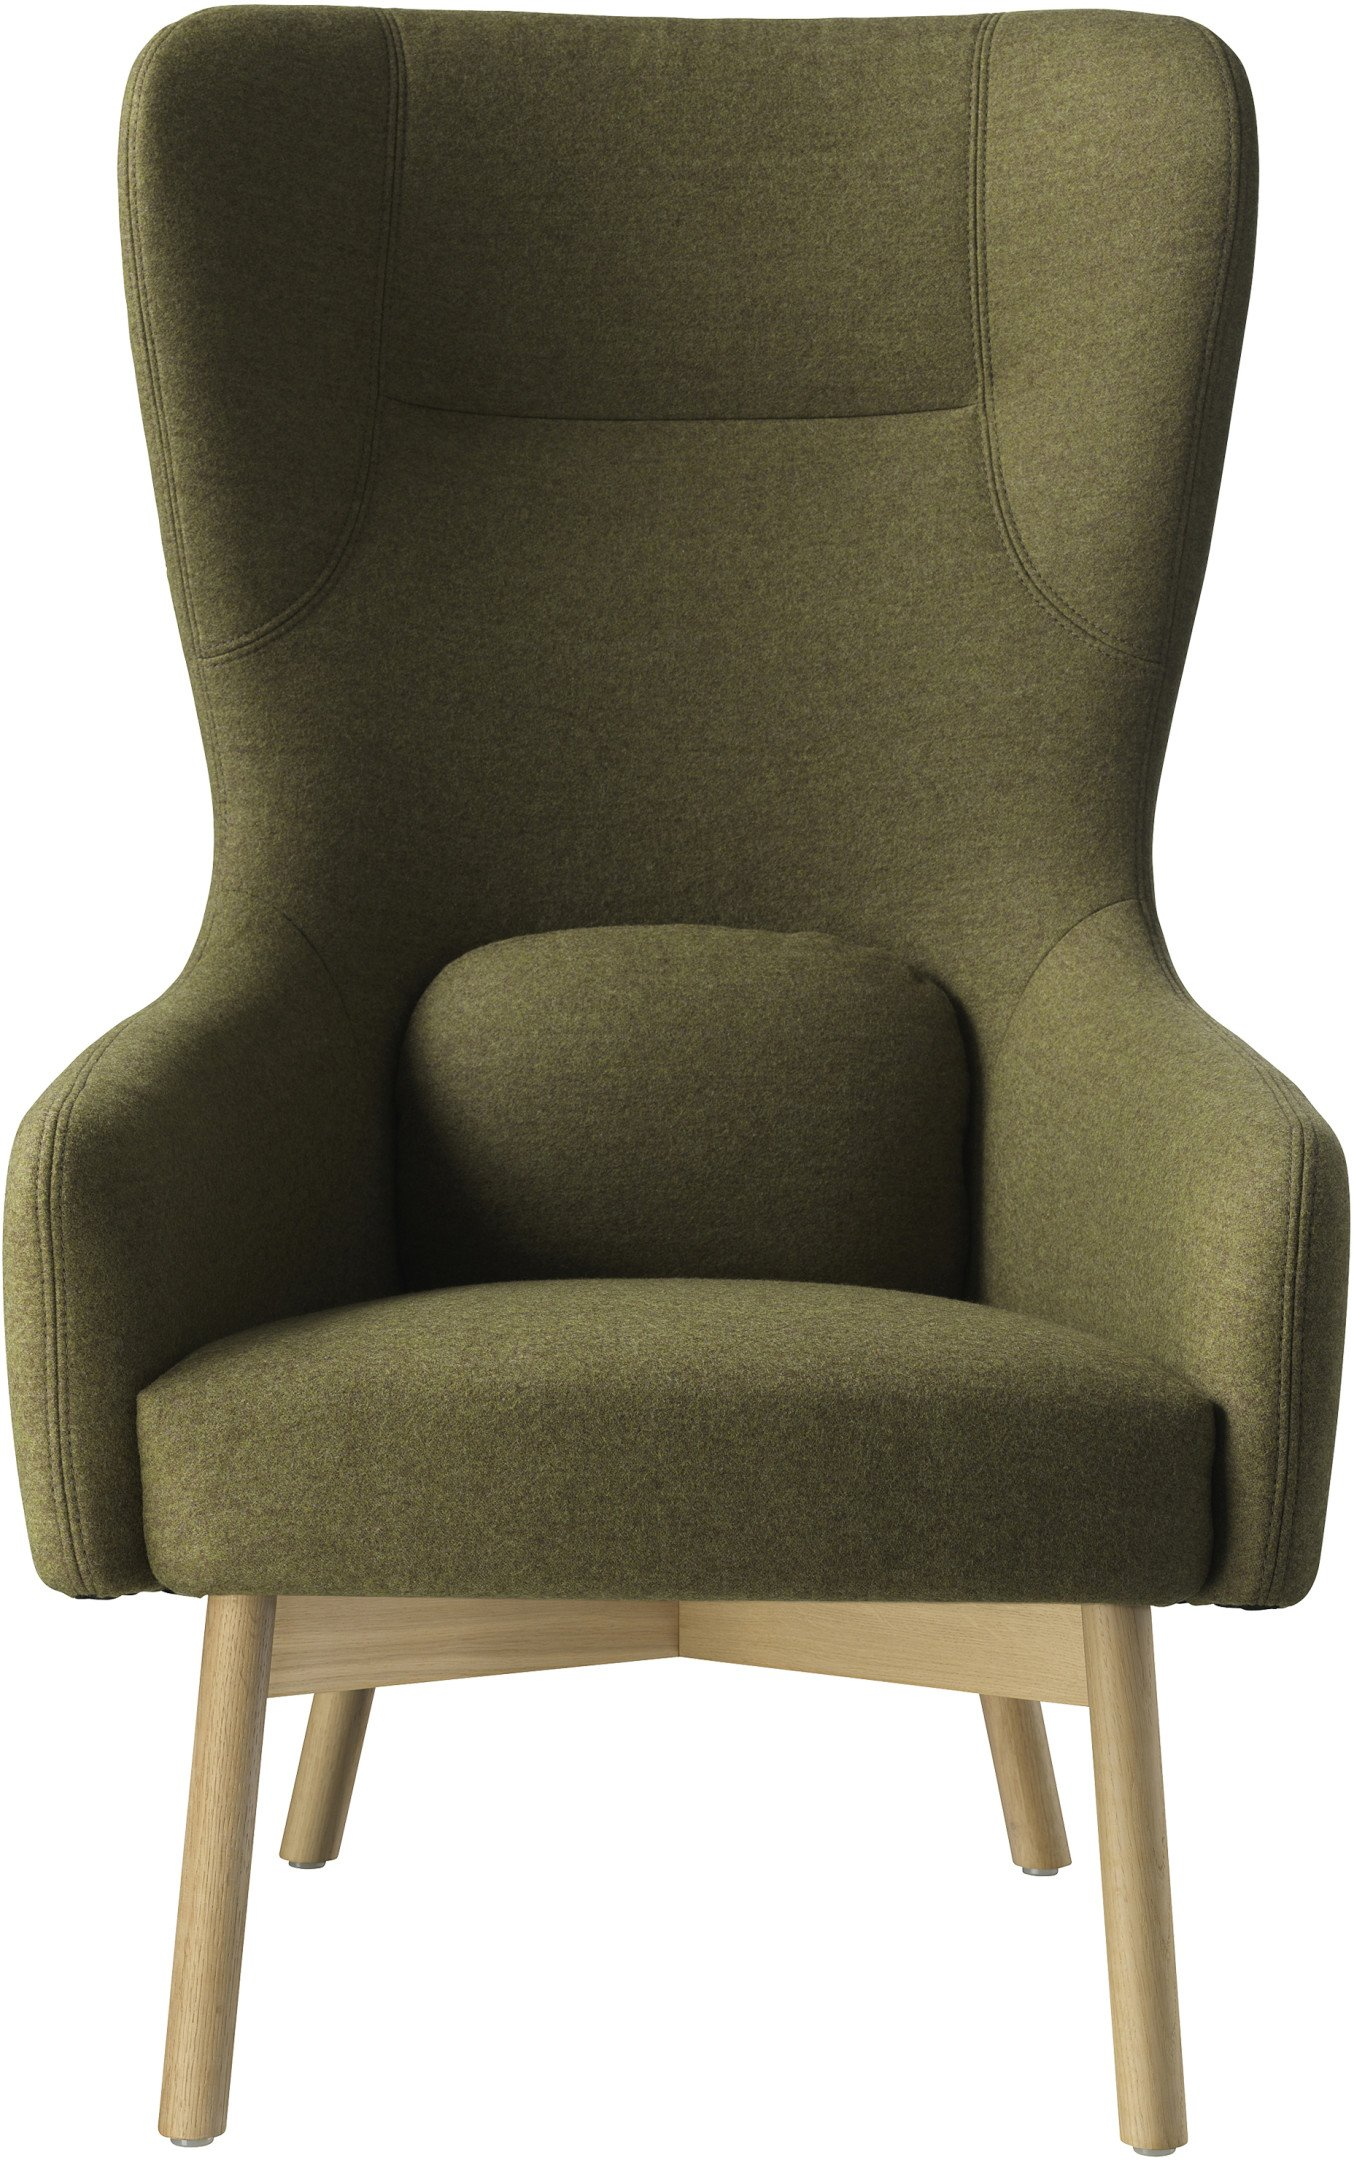 L35 Gesja Wing Chair Green by J. Foersom & P. Hiort-Lorenzen for FDB Møbler - 504050 - photo